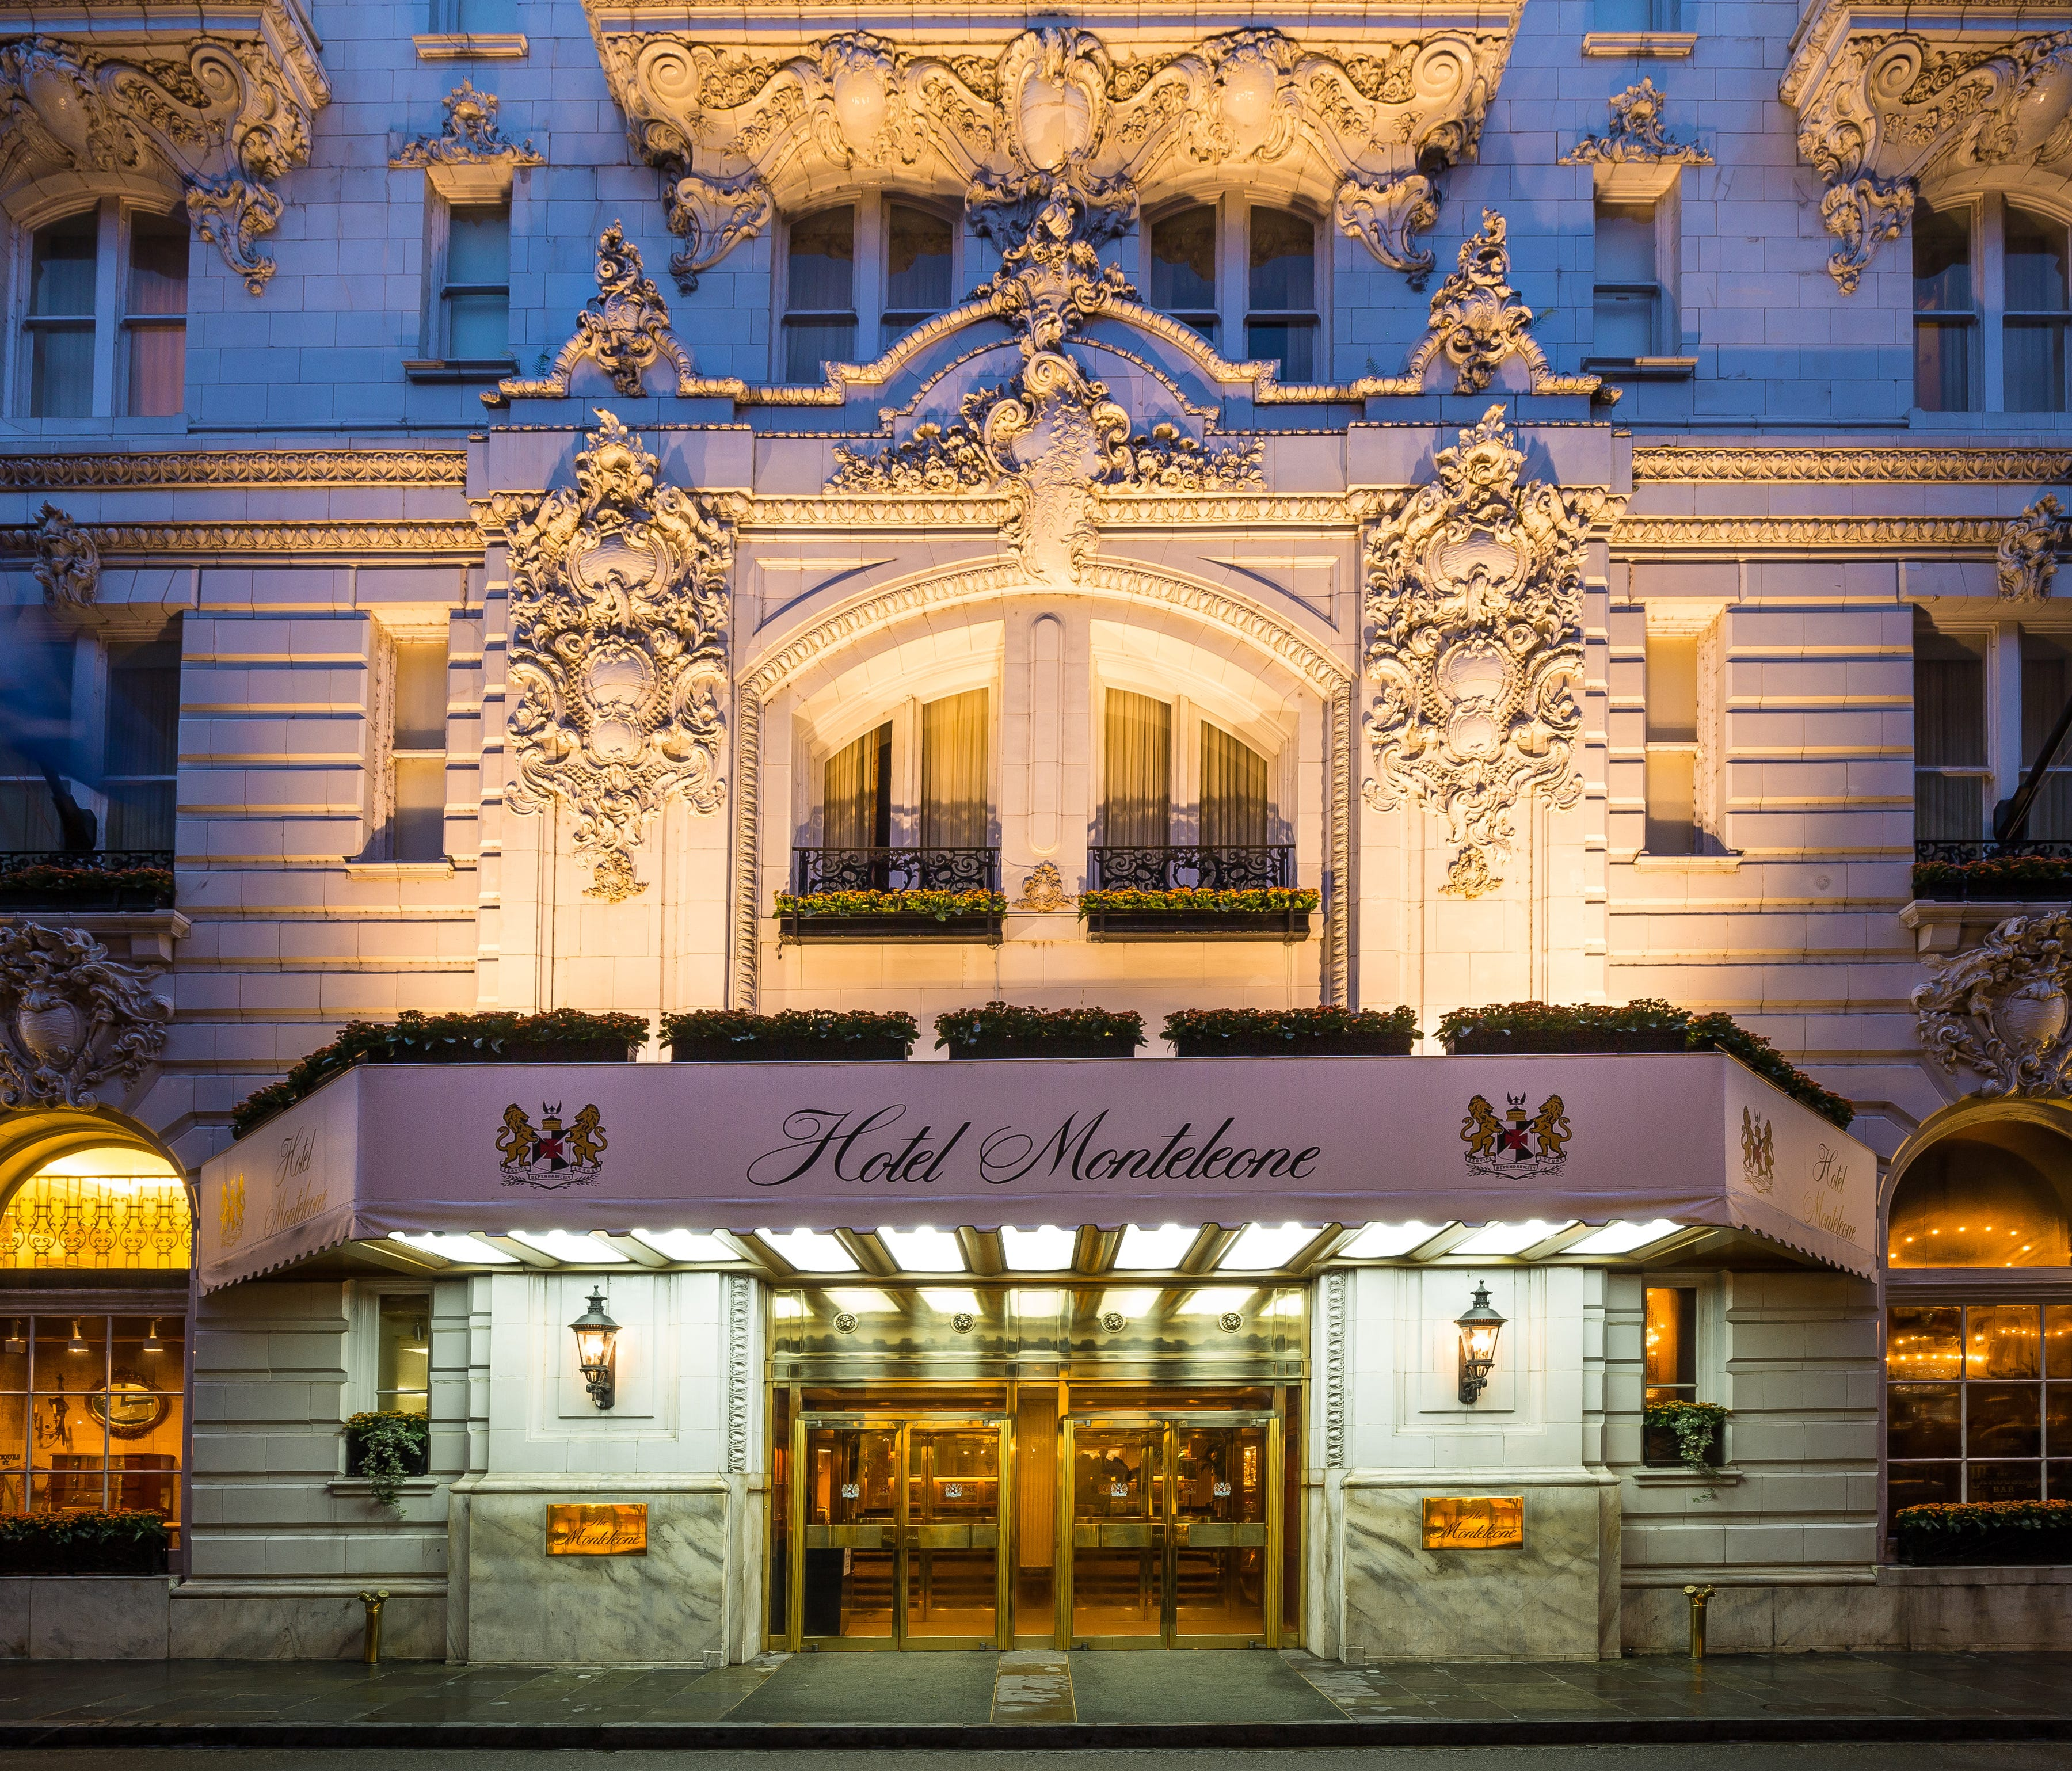 Hotel Monteleone, New Orleans is the 11th most in demand hotel in the city, according to Expedia.